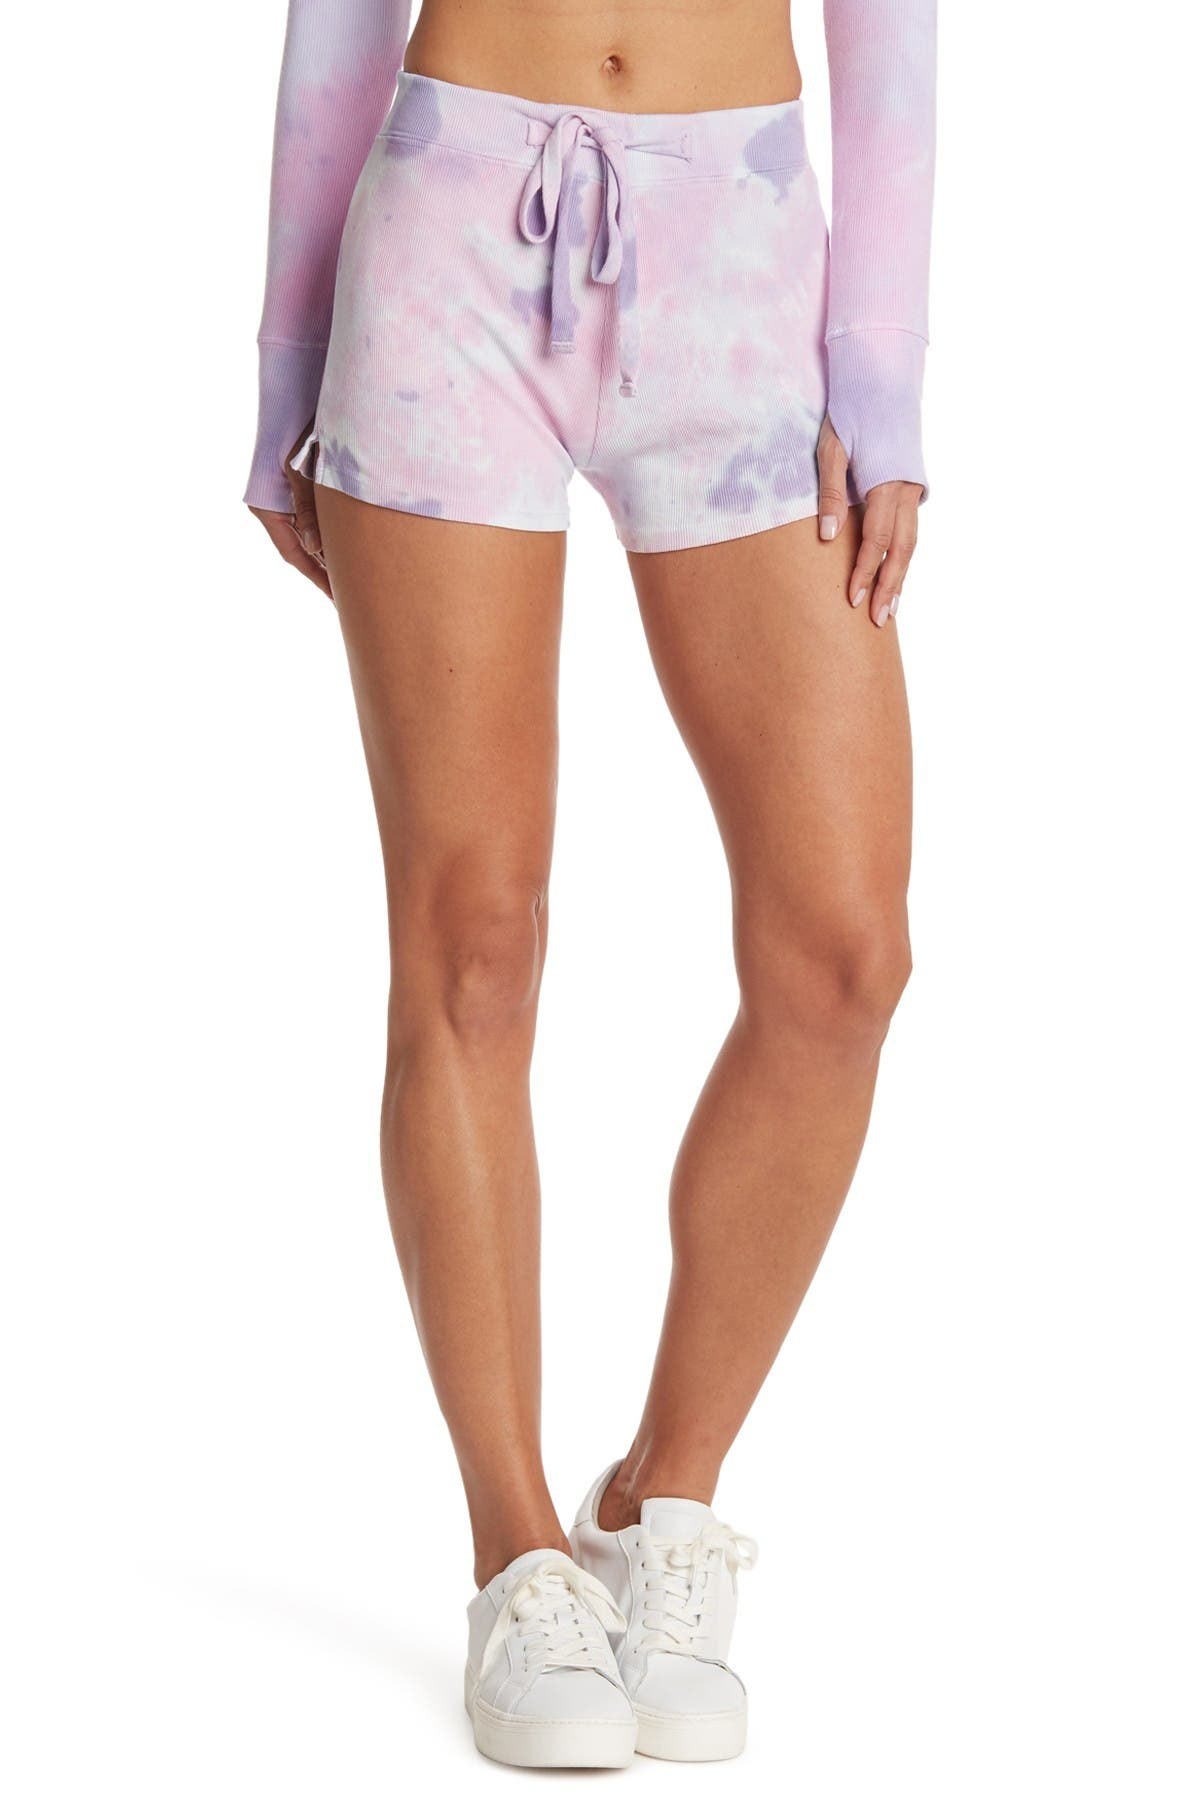 Image of ARX LAB Ribbed Knit Tie Dye Shorts